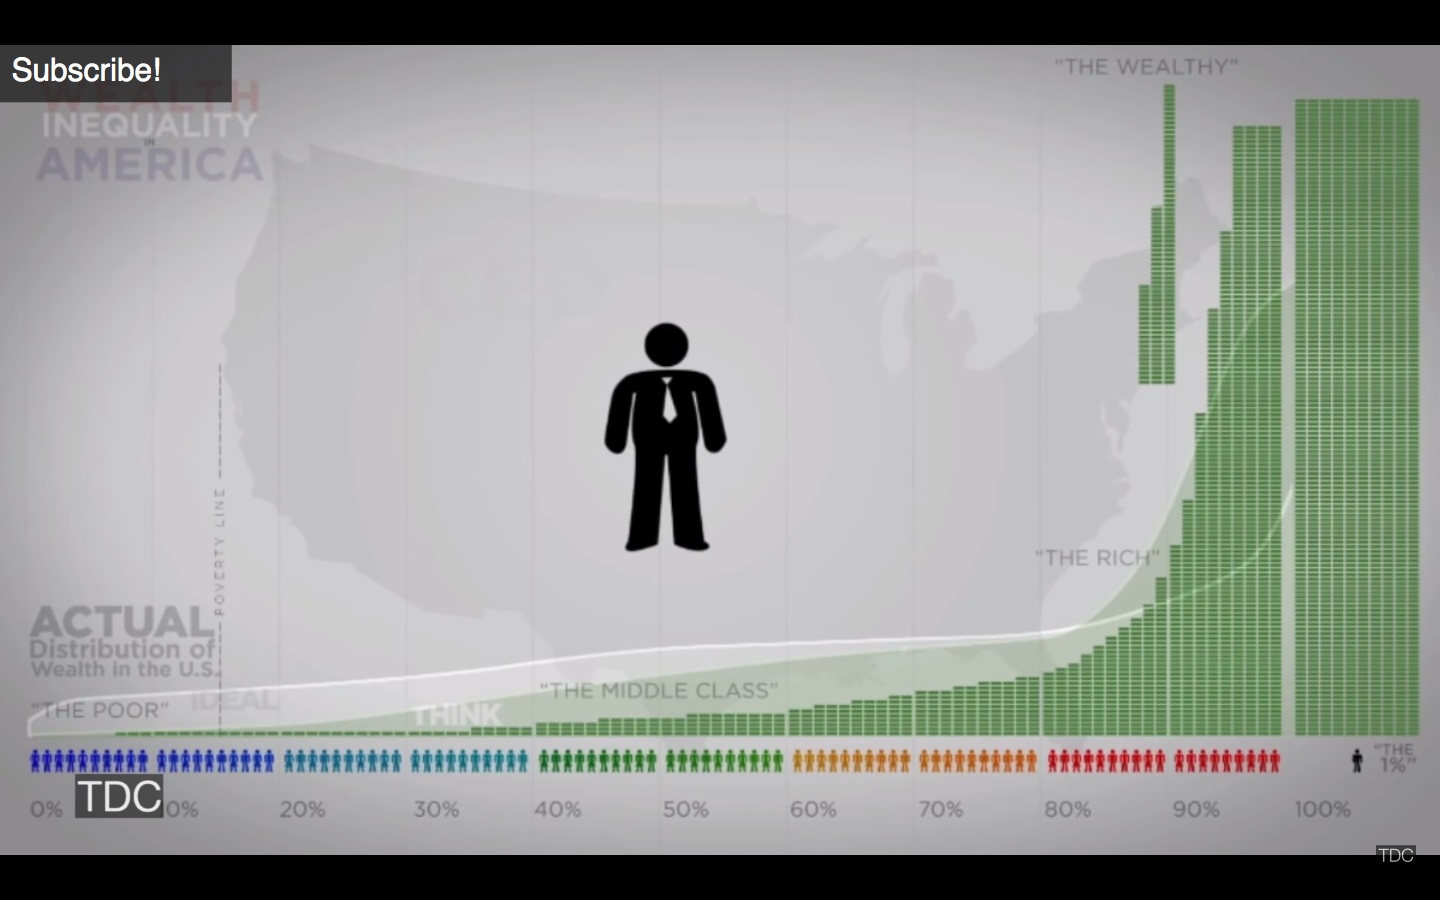 Wealth inequality in America